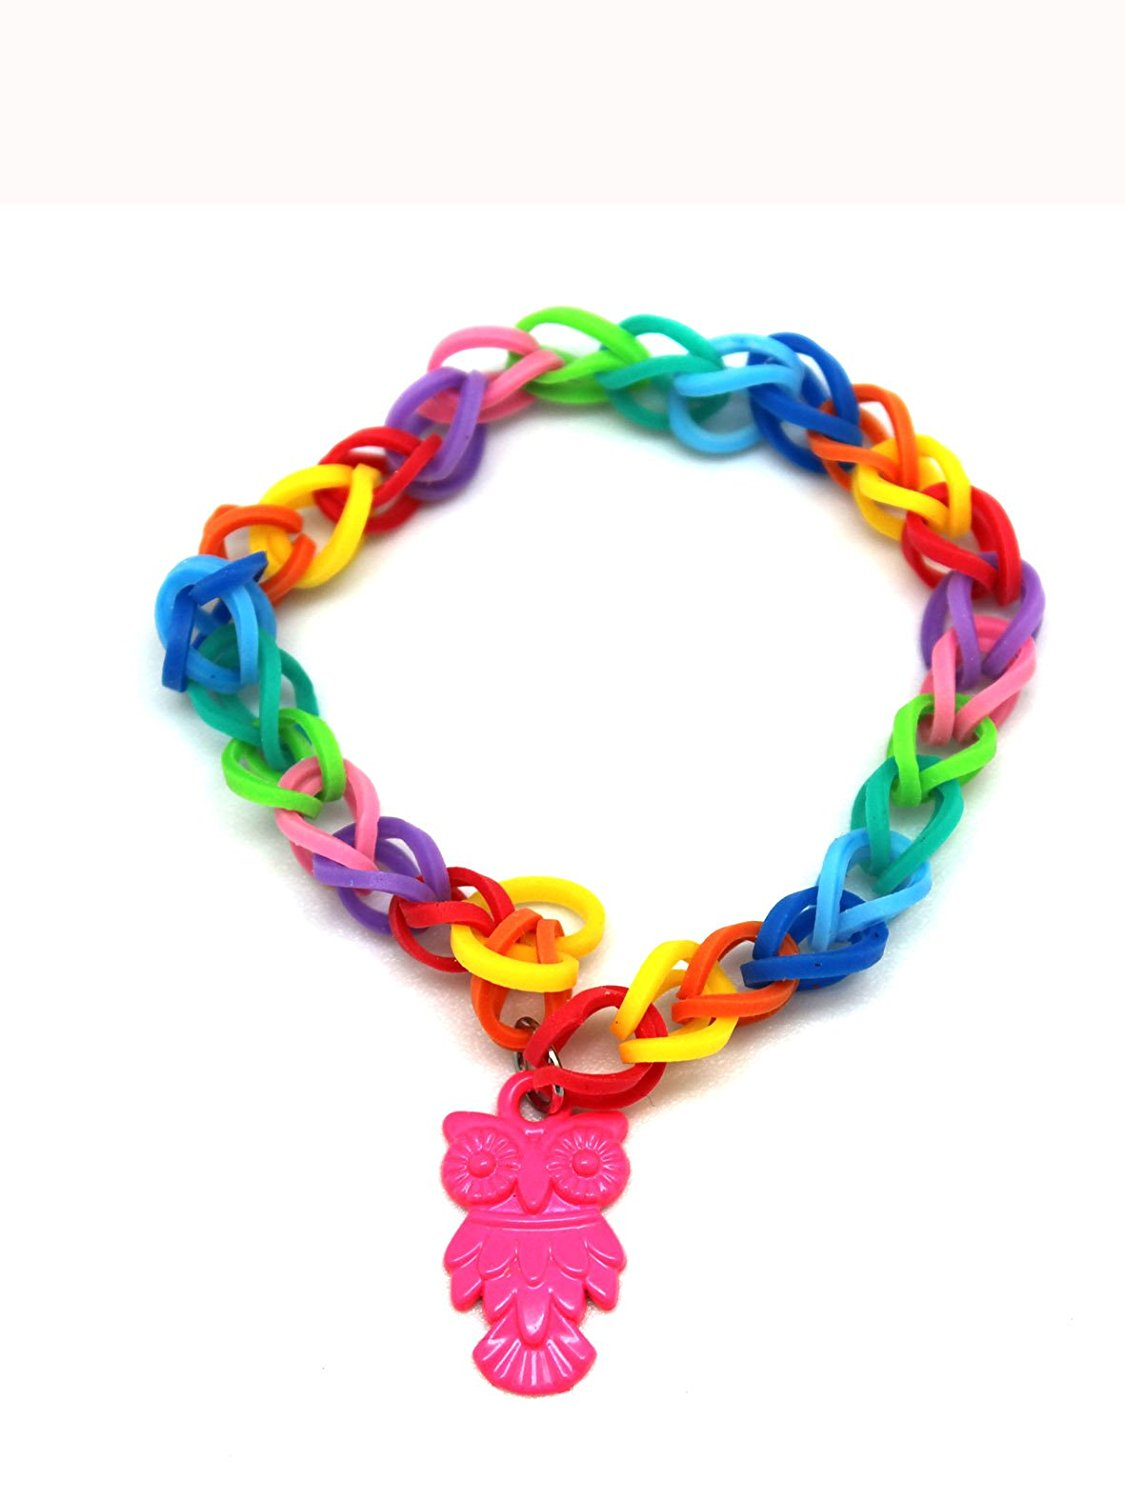 Pink Owl Charm With Rainbow Loom Rubber Band Bracelet